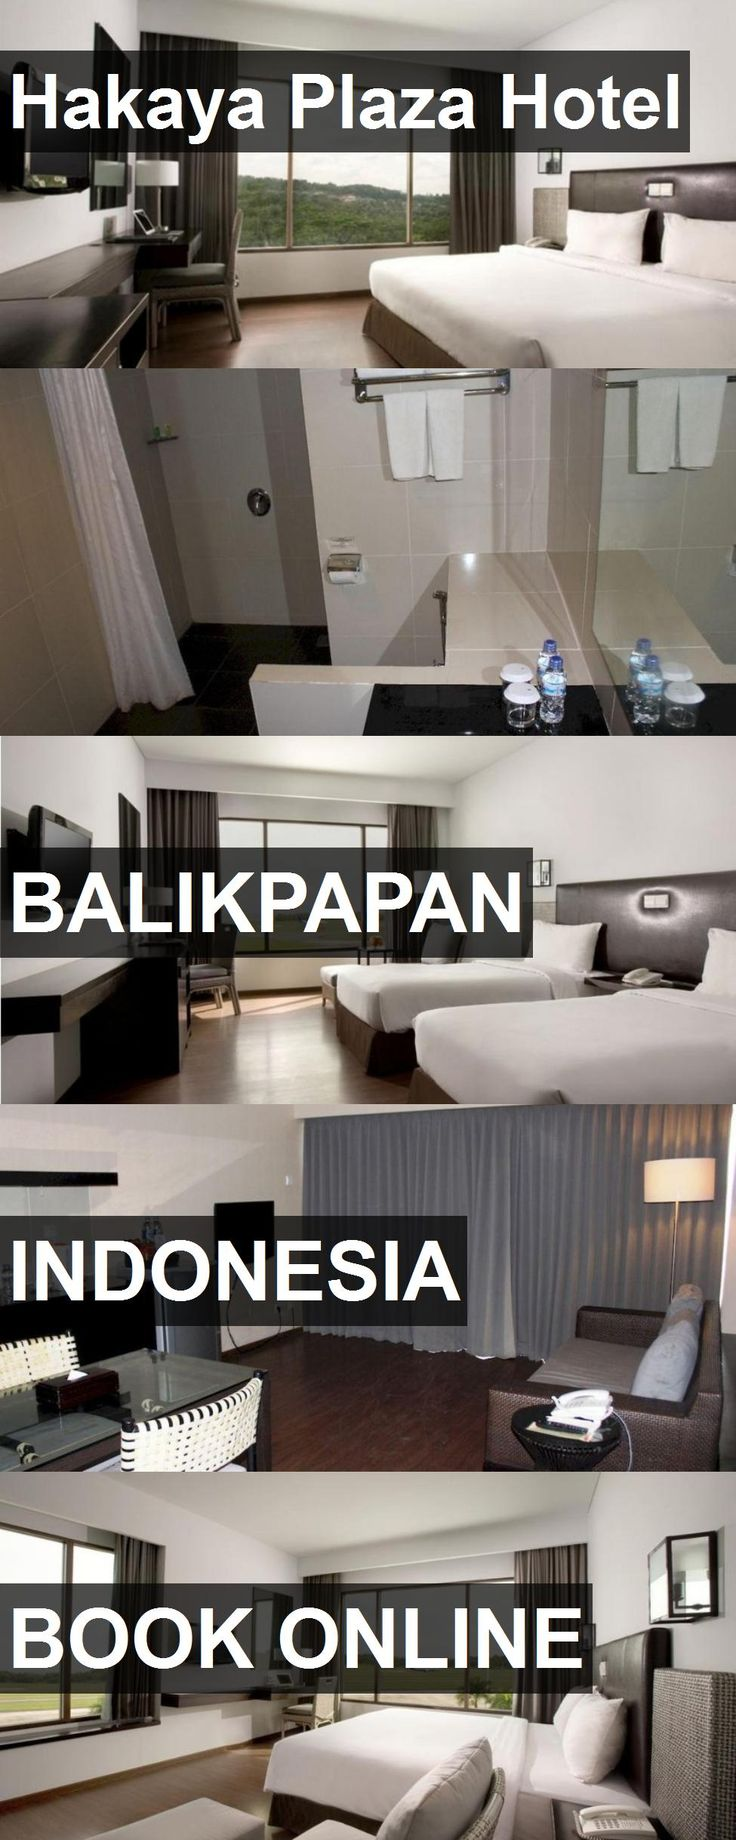 Hotel Hakaya Plaza Hotel in Balikpapan, Indonesia. For more information, photos, reviews and best prices please follow the link. #Indonesia #Balikpapan #HakayaPlazaHotel #hotel #travel #vacation